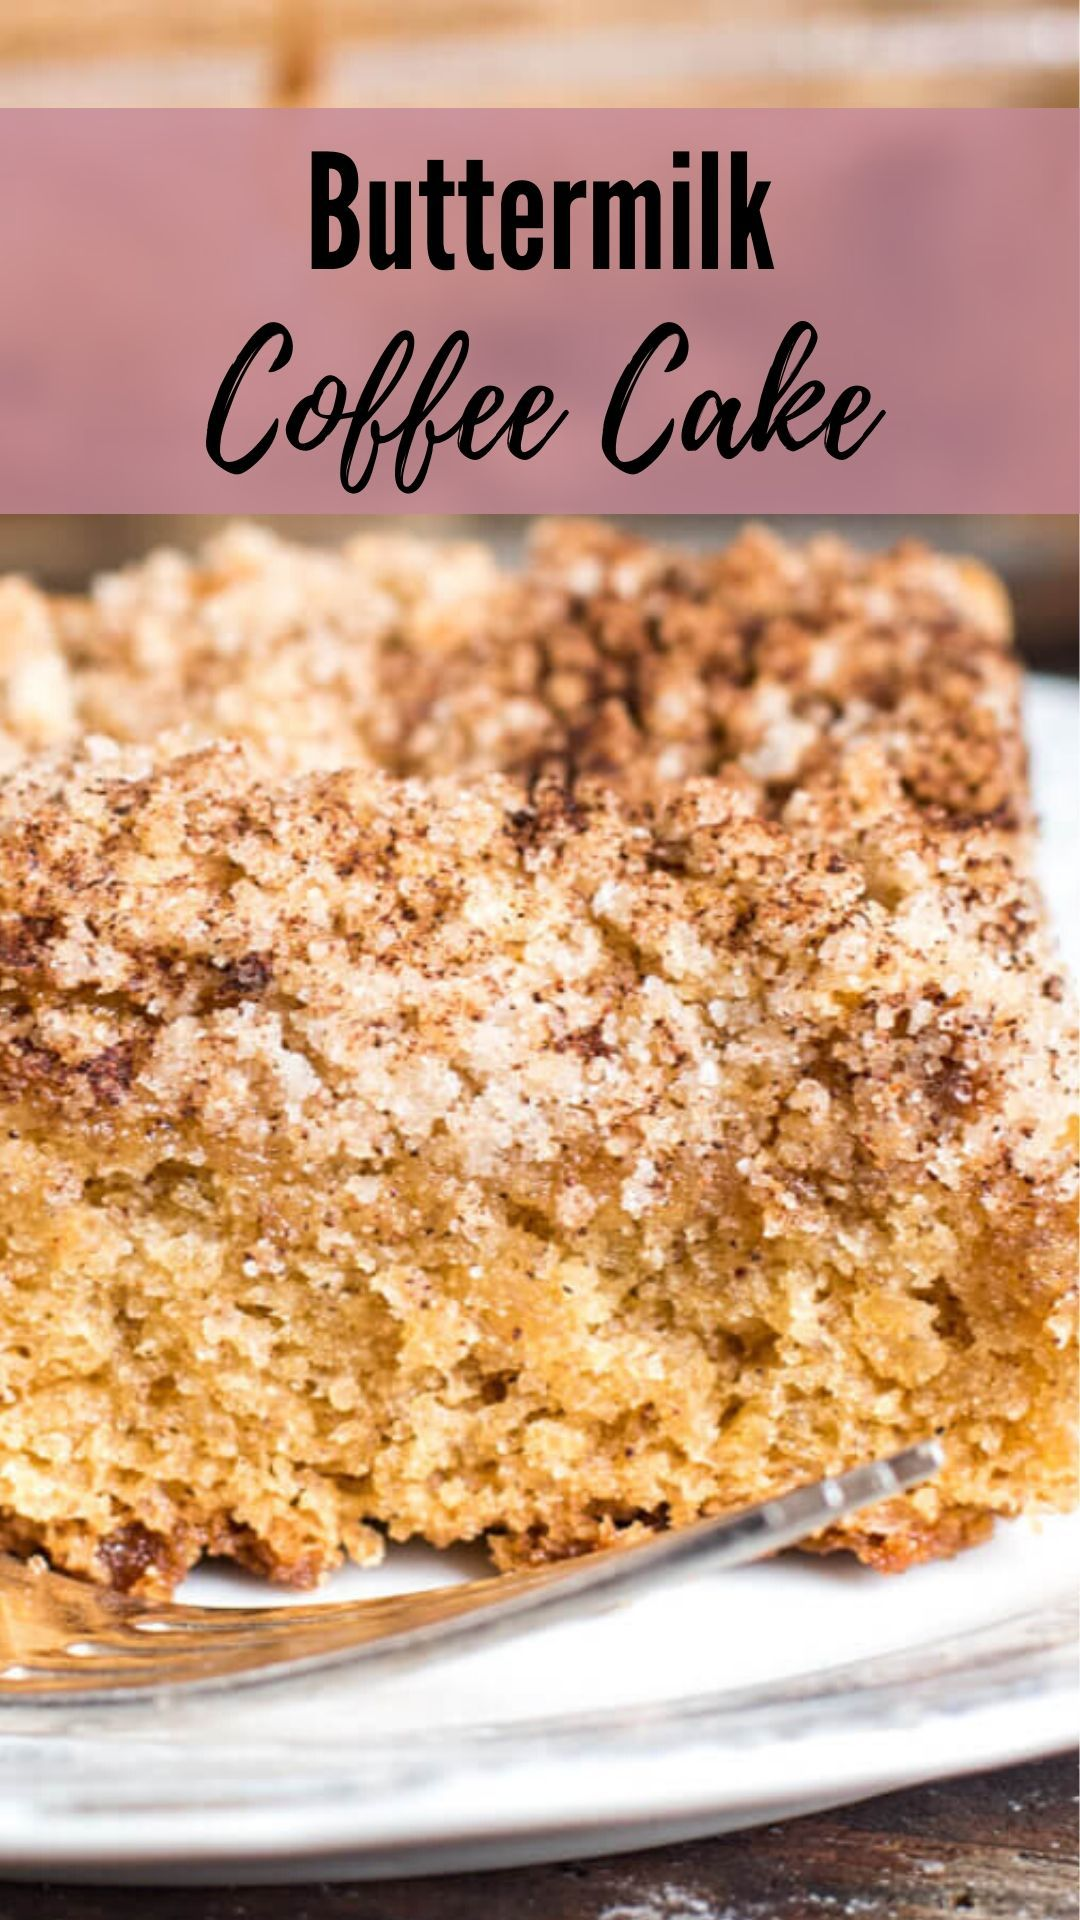 Buttermilk Coffee Cake In 2020 Buttermilk Dessert Recipes Buttermilk Coffee Cake Coffee Cake Recipes Easy